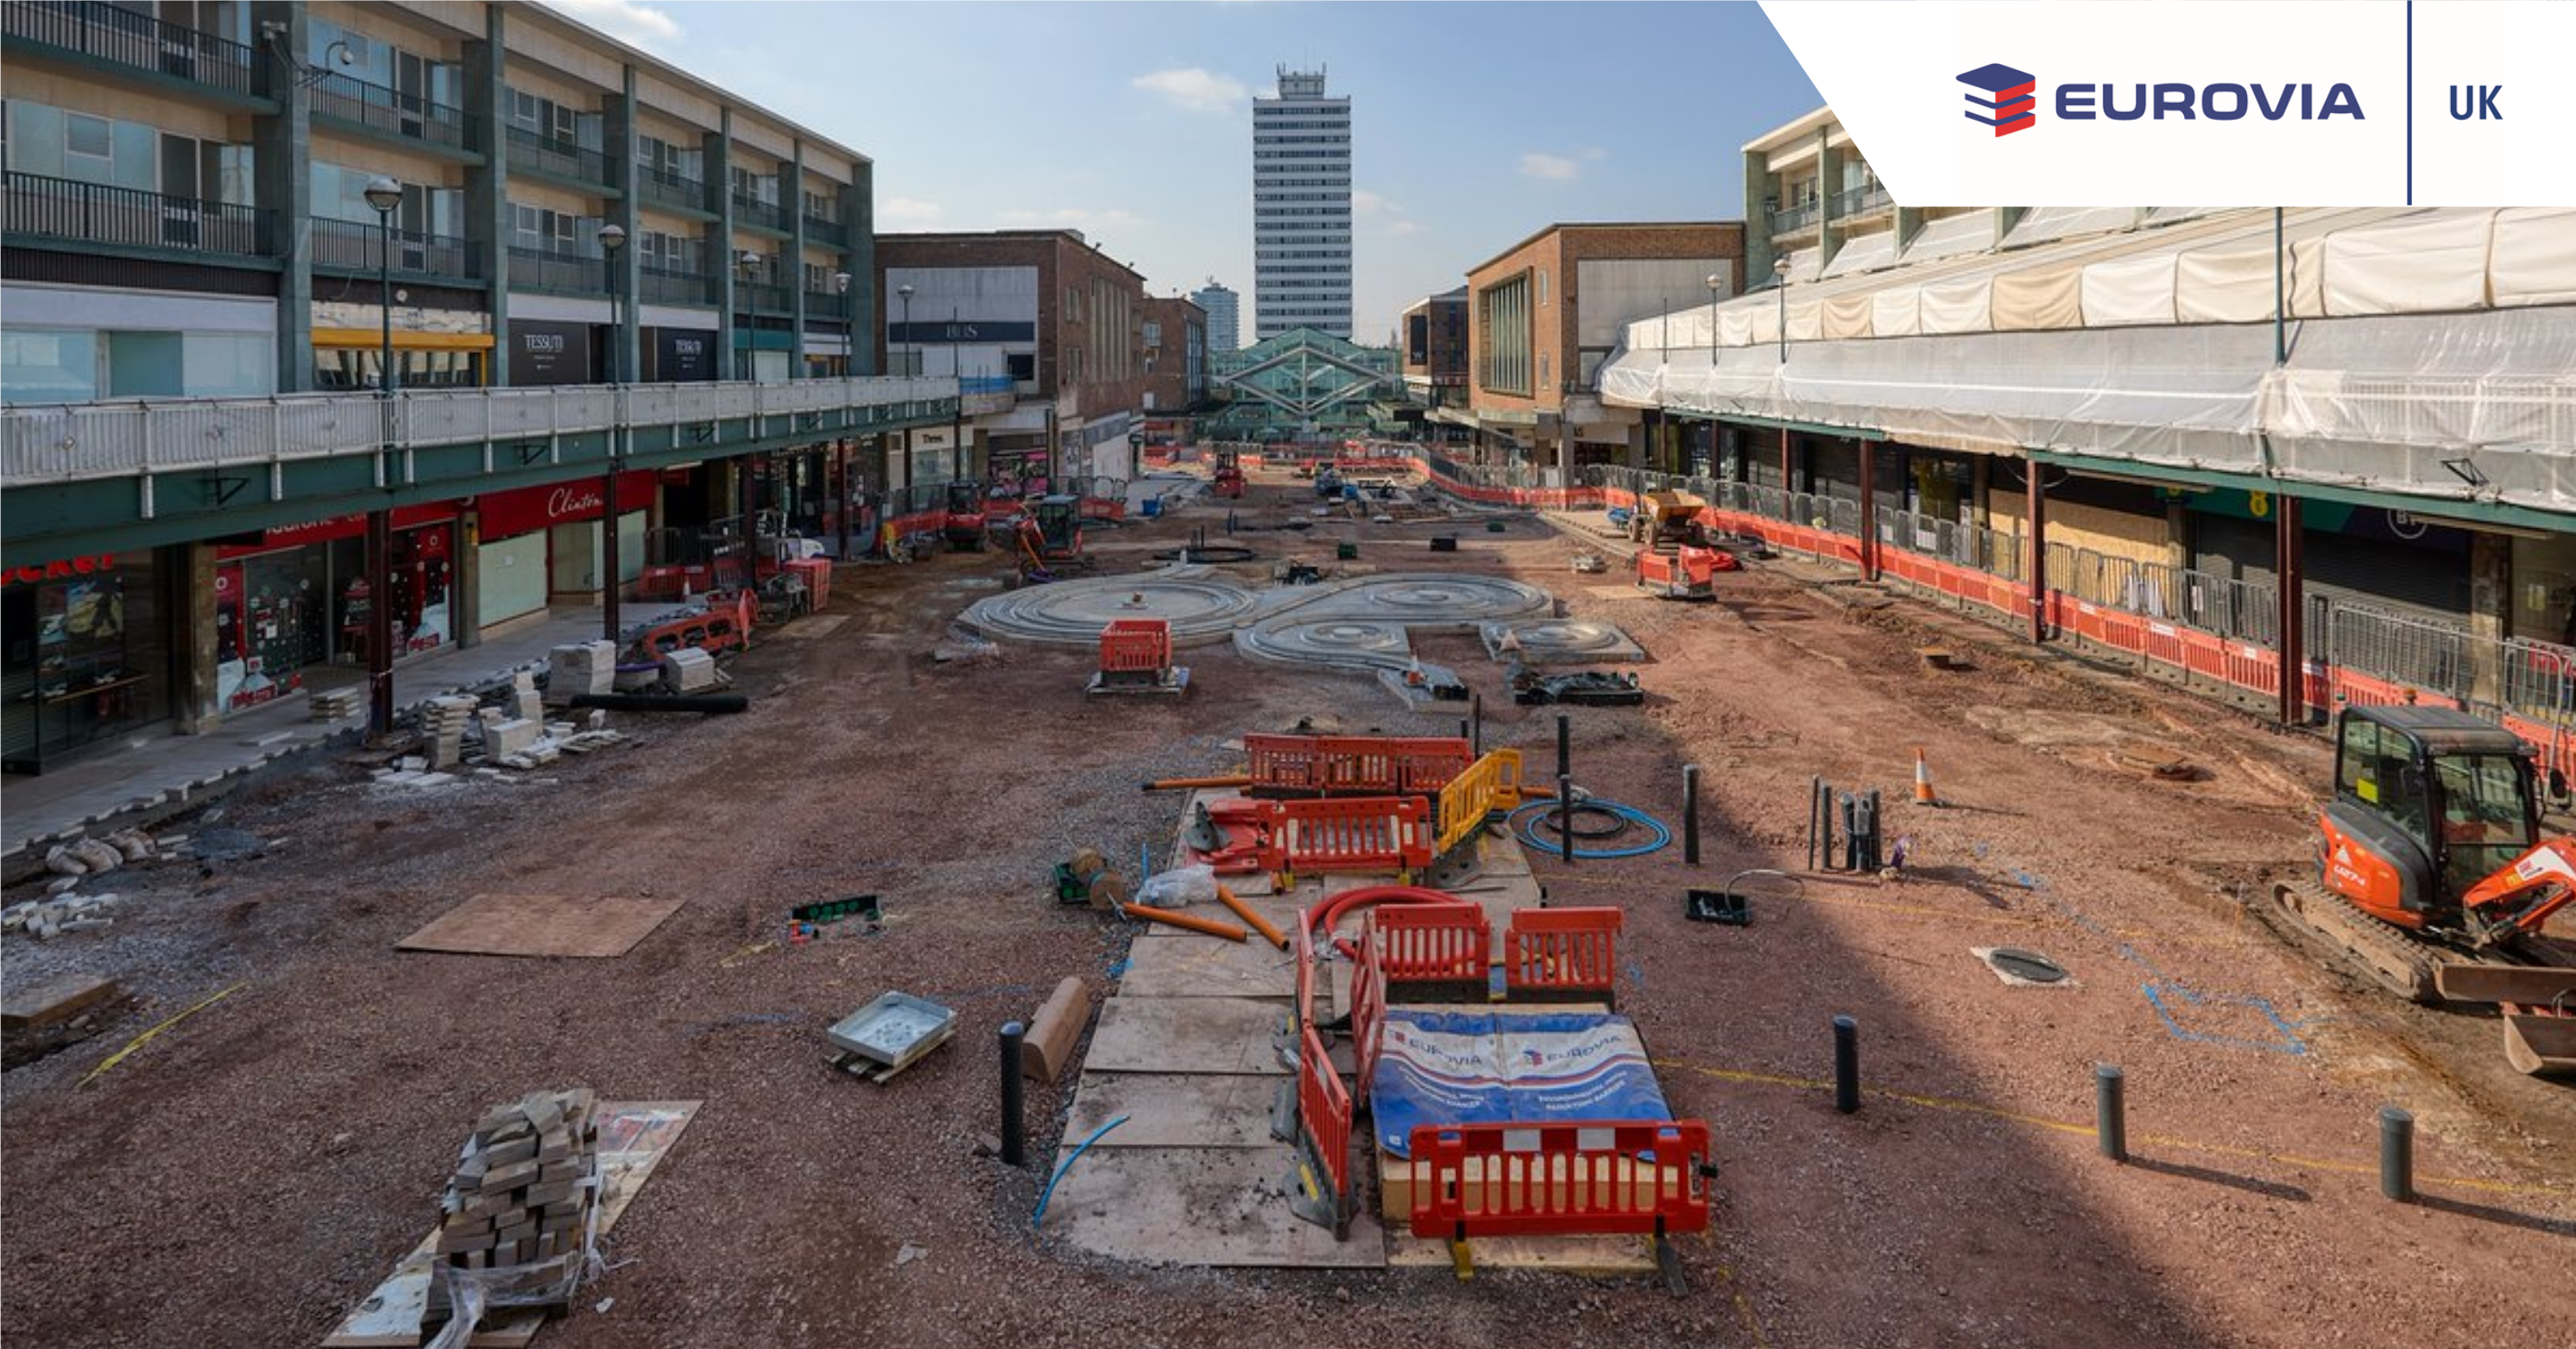 Eurovia-uk-Coventry-Retail-Quarter-project-paperless-construction